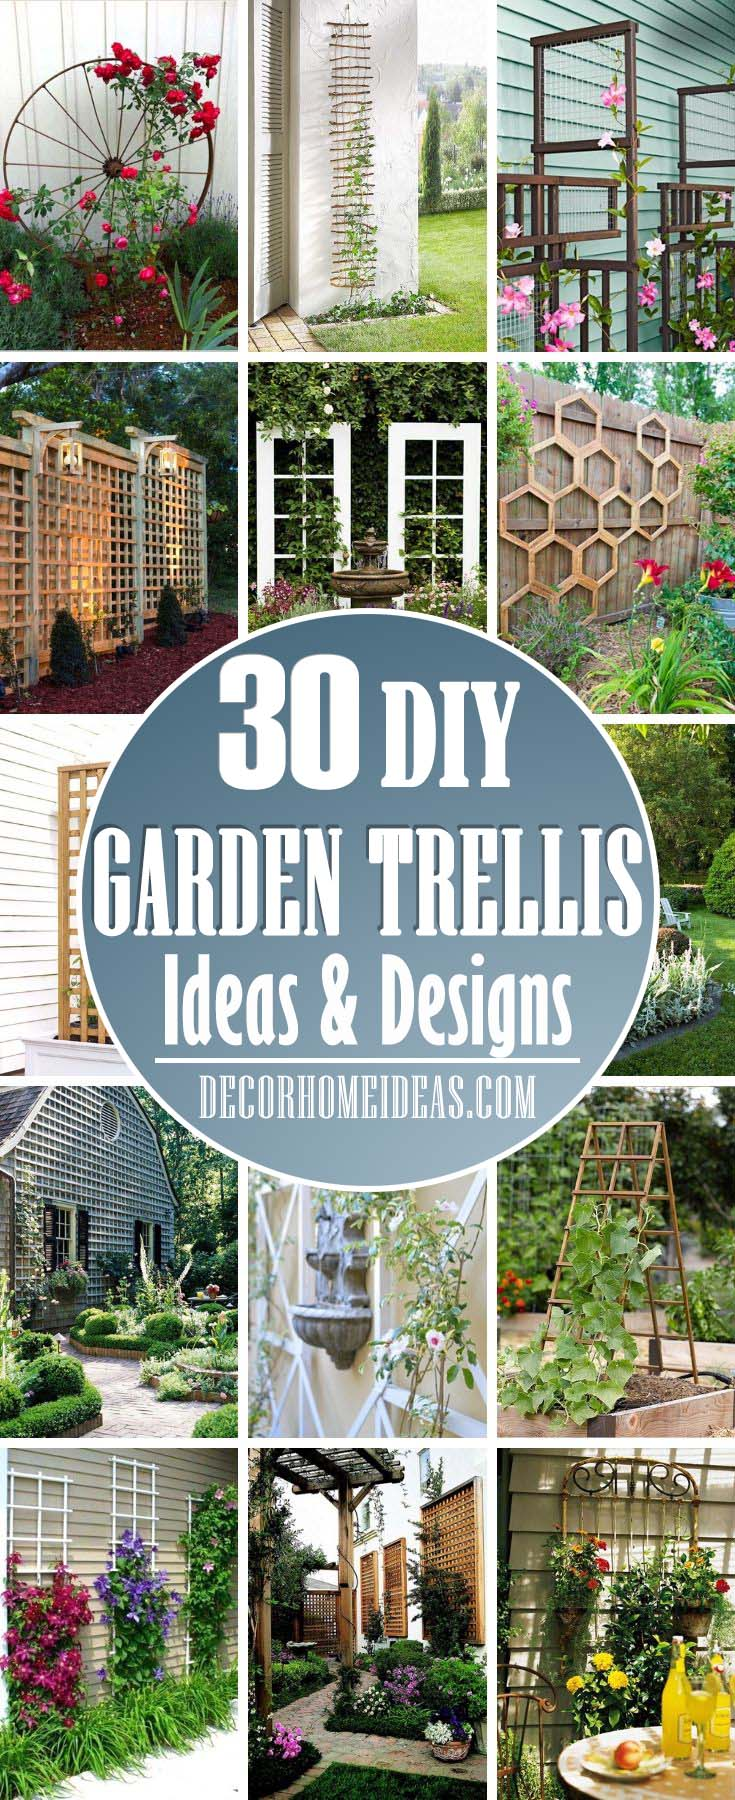 Best DIY Garden Trellis Ideas. How to make a beautiful garden trellis for your plants and flowers and spruce up your backyard, wall or fence. #trellis #diy #garden #decorhomeideas